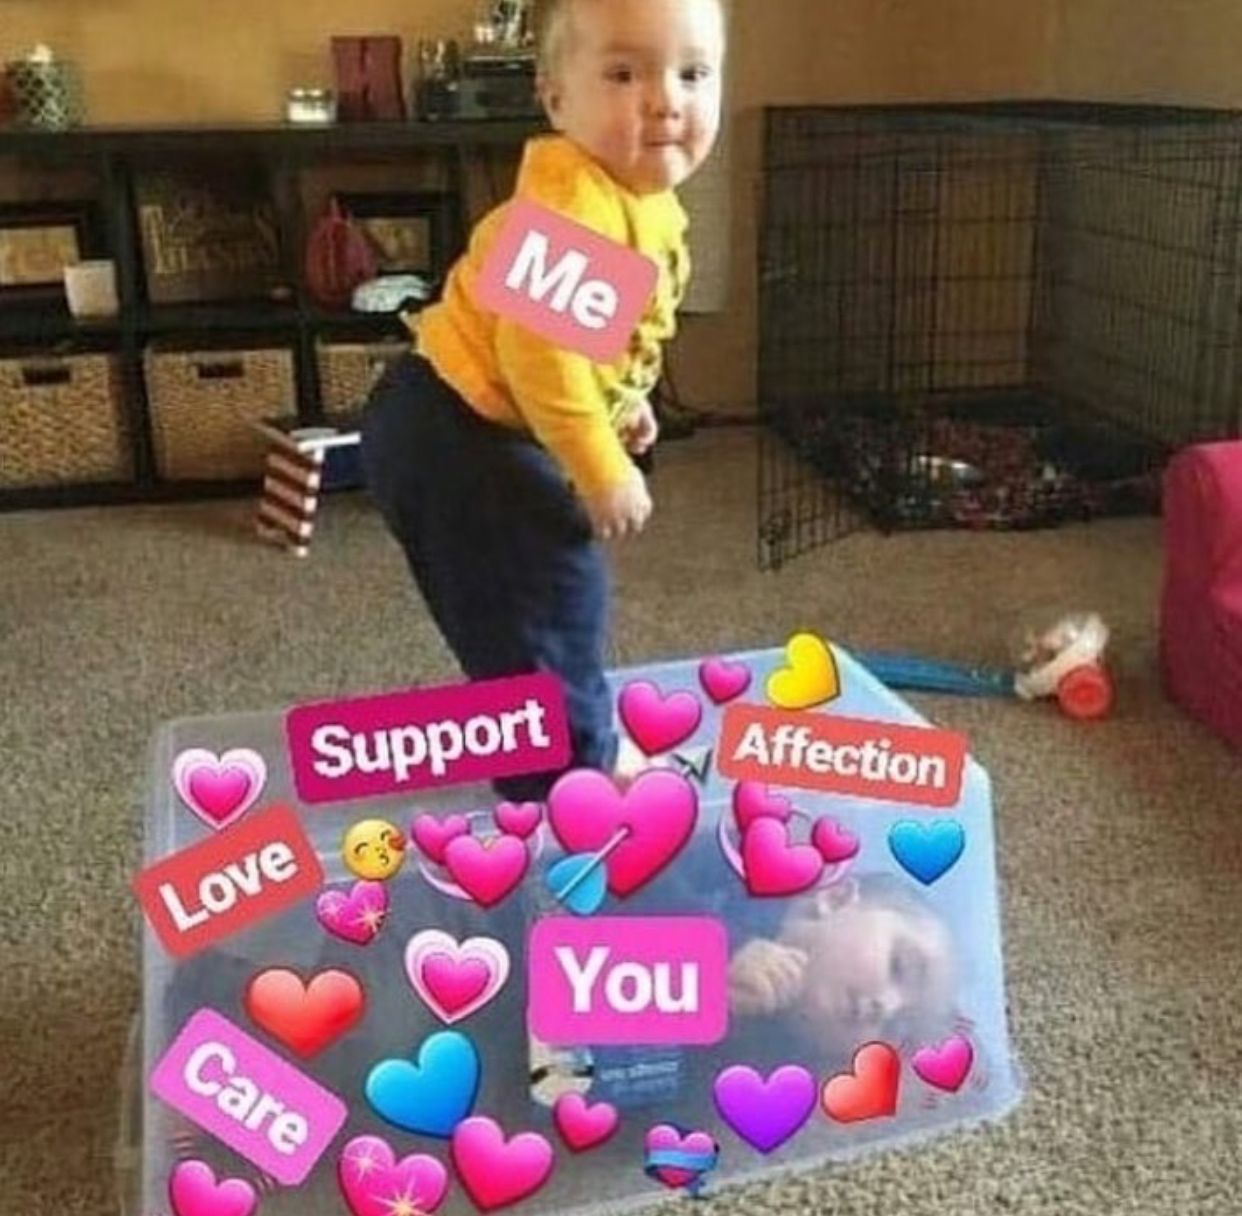 Pin By Annisa Wida On Reaction Pics Cute Love Memes Love Memes Support Meme